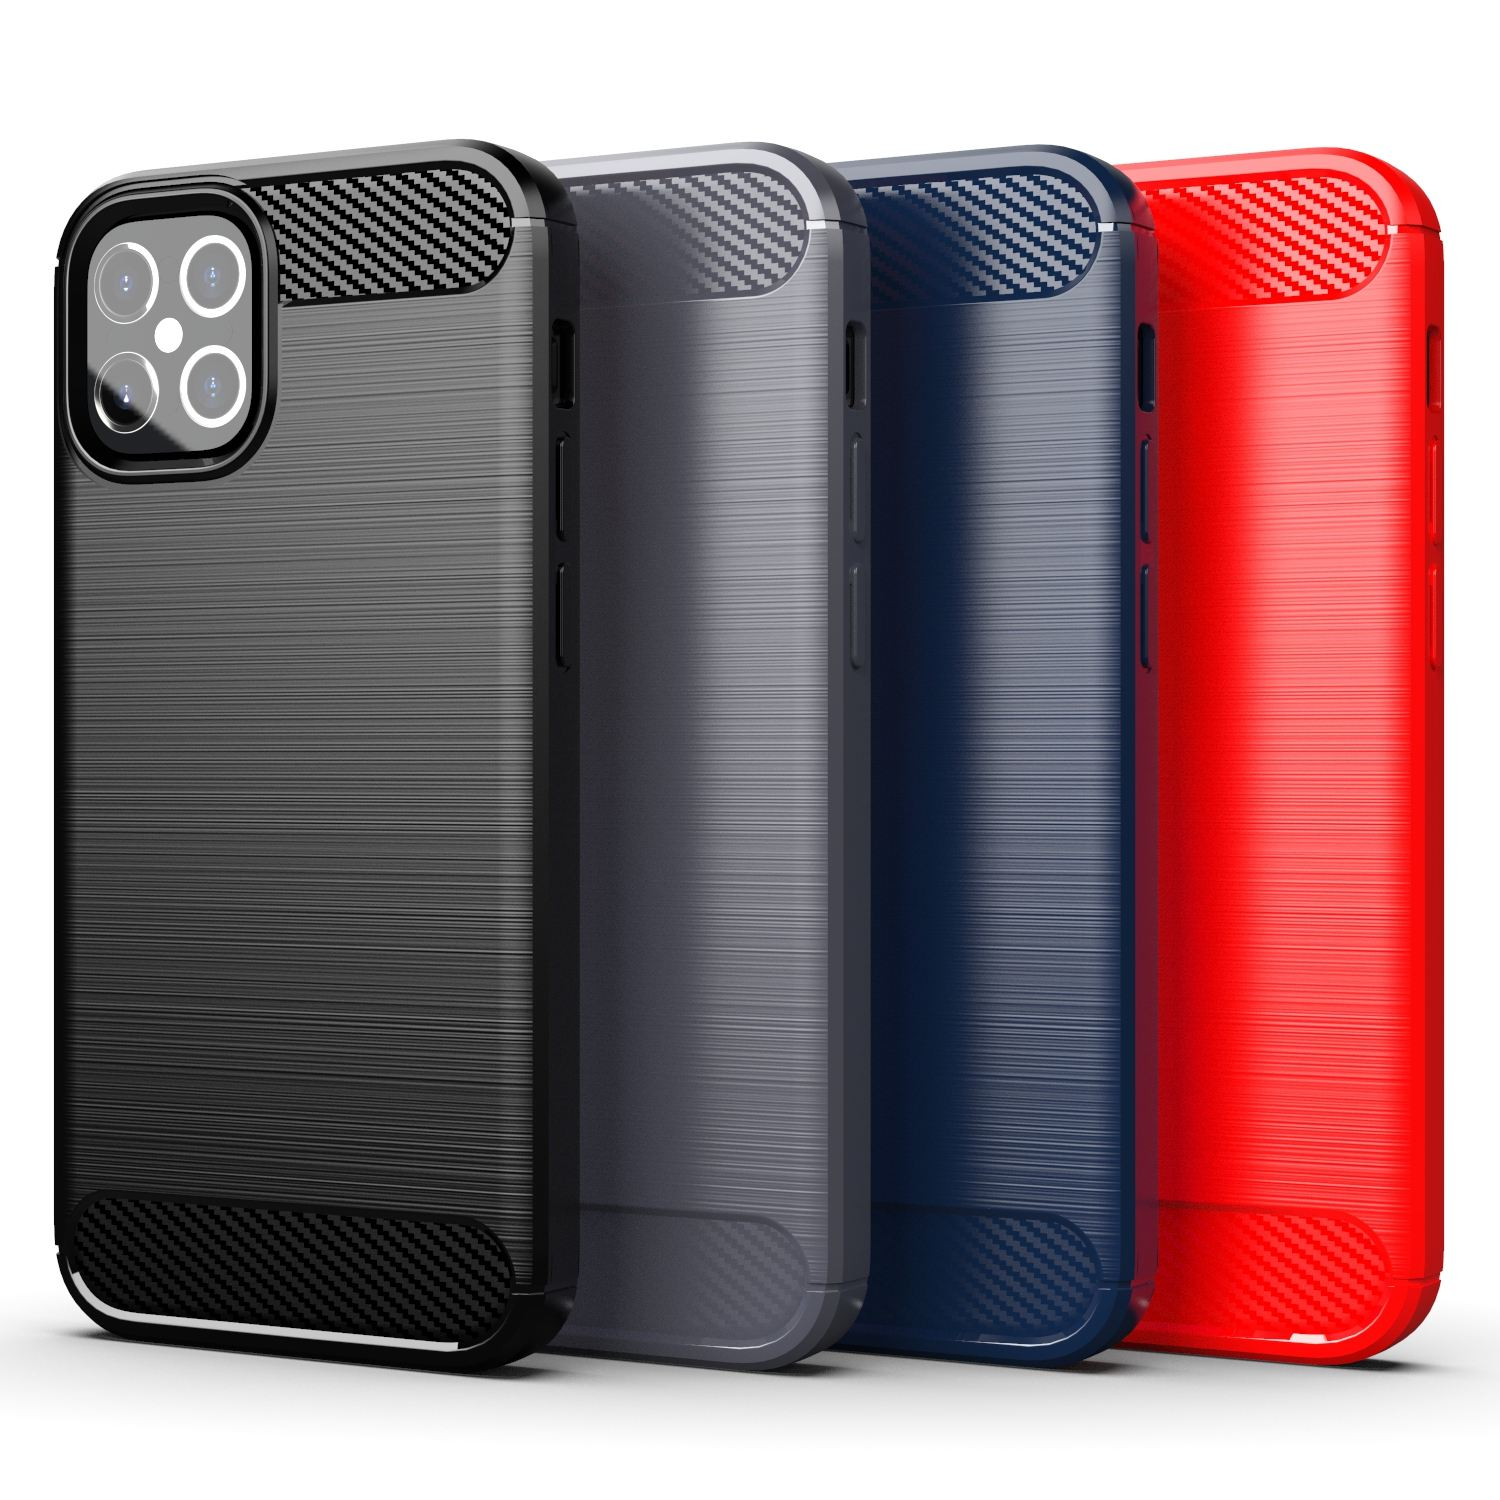 Fabriek Groothandel Soft Tpu Case Voor Iphone 12 Pro Max Back Cover Carbon Fiber Case Voor Iphone 12 Case